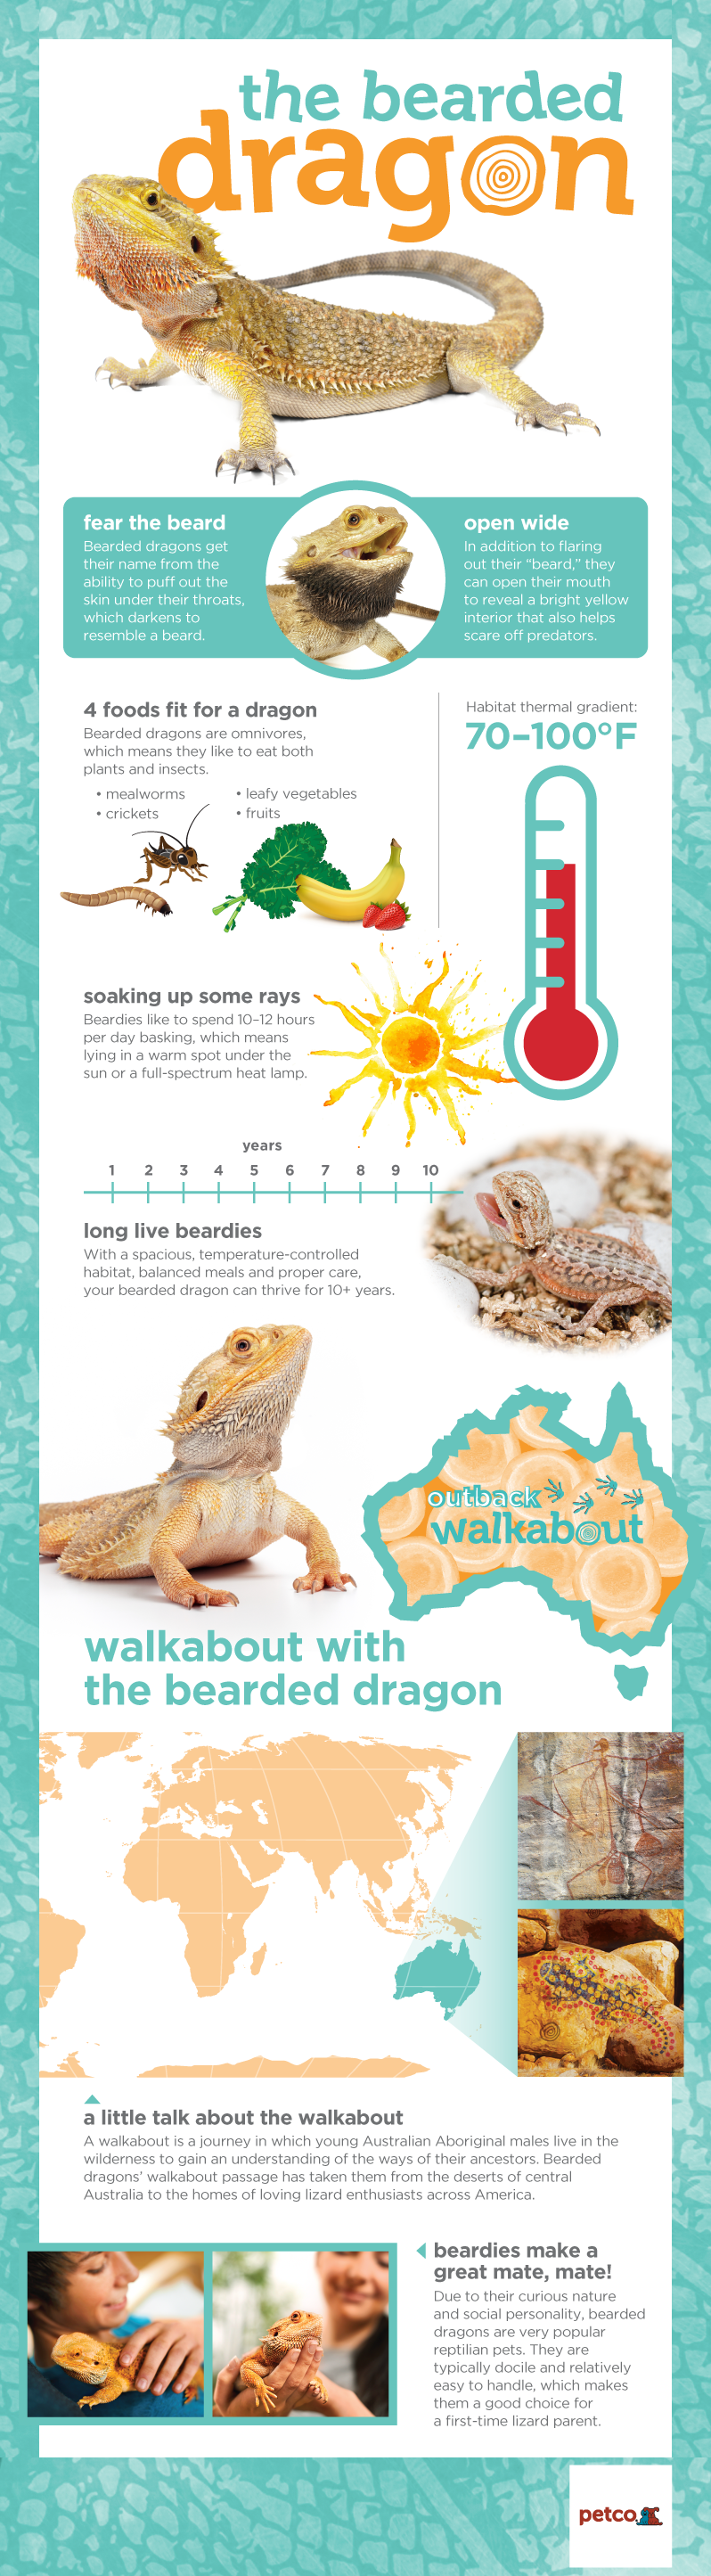 The Australian Bearded Dragon Can Change Its Based On Temperature